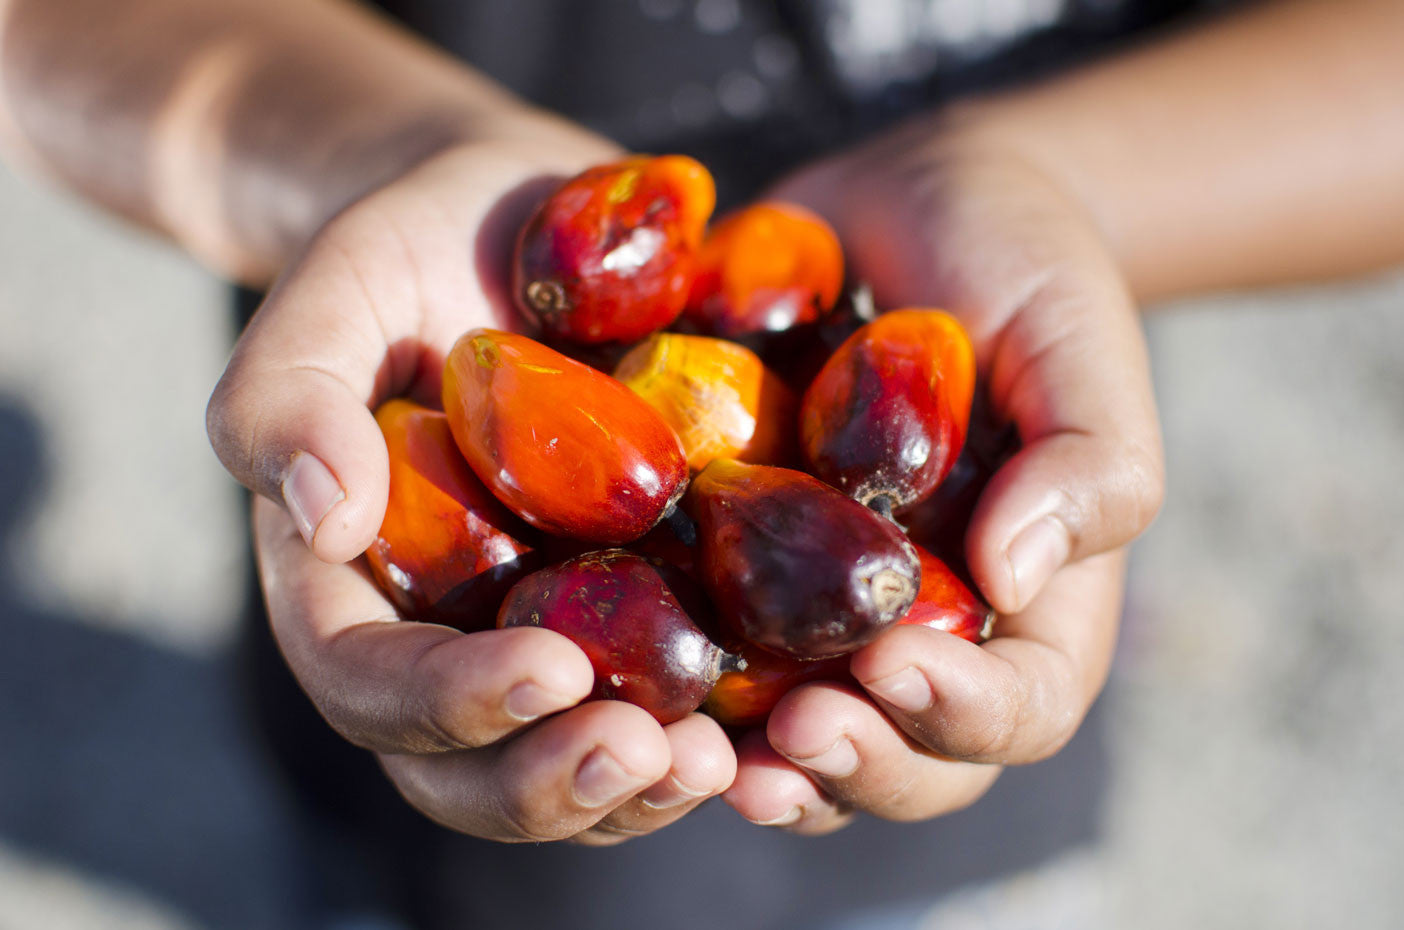 6 Ways to Avoid Palm Oil (and Why You Should)